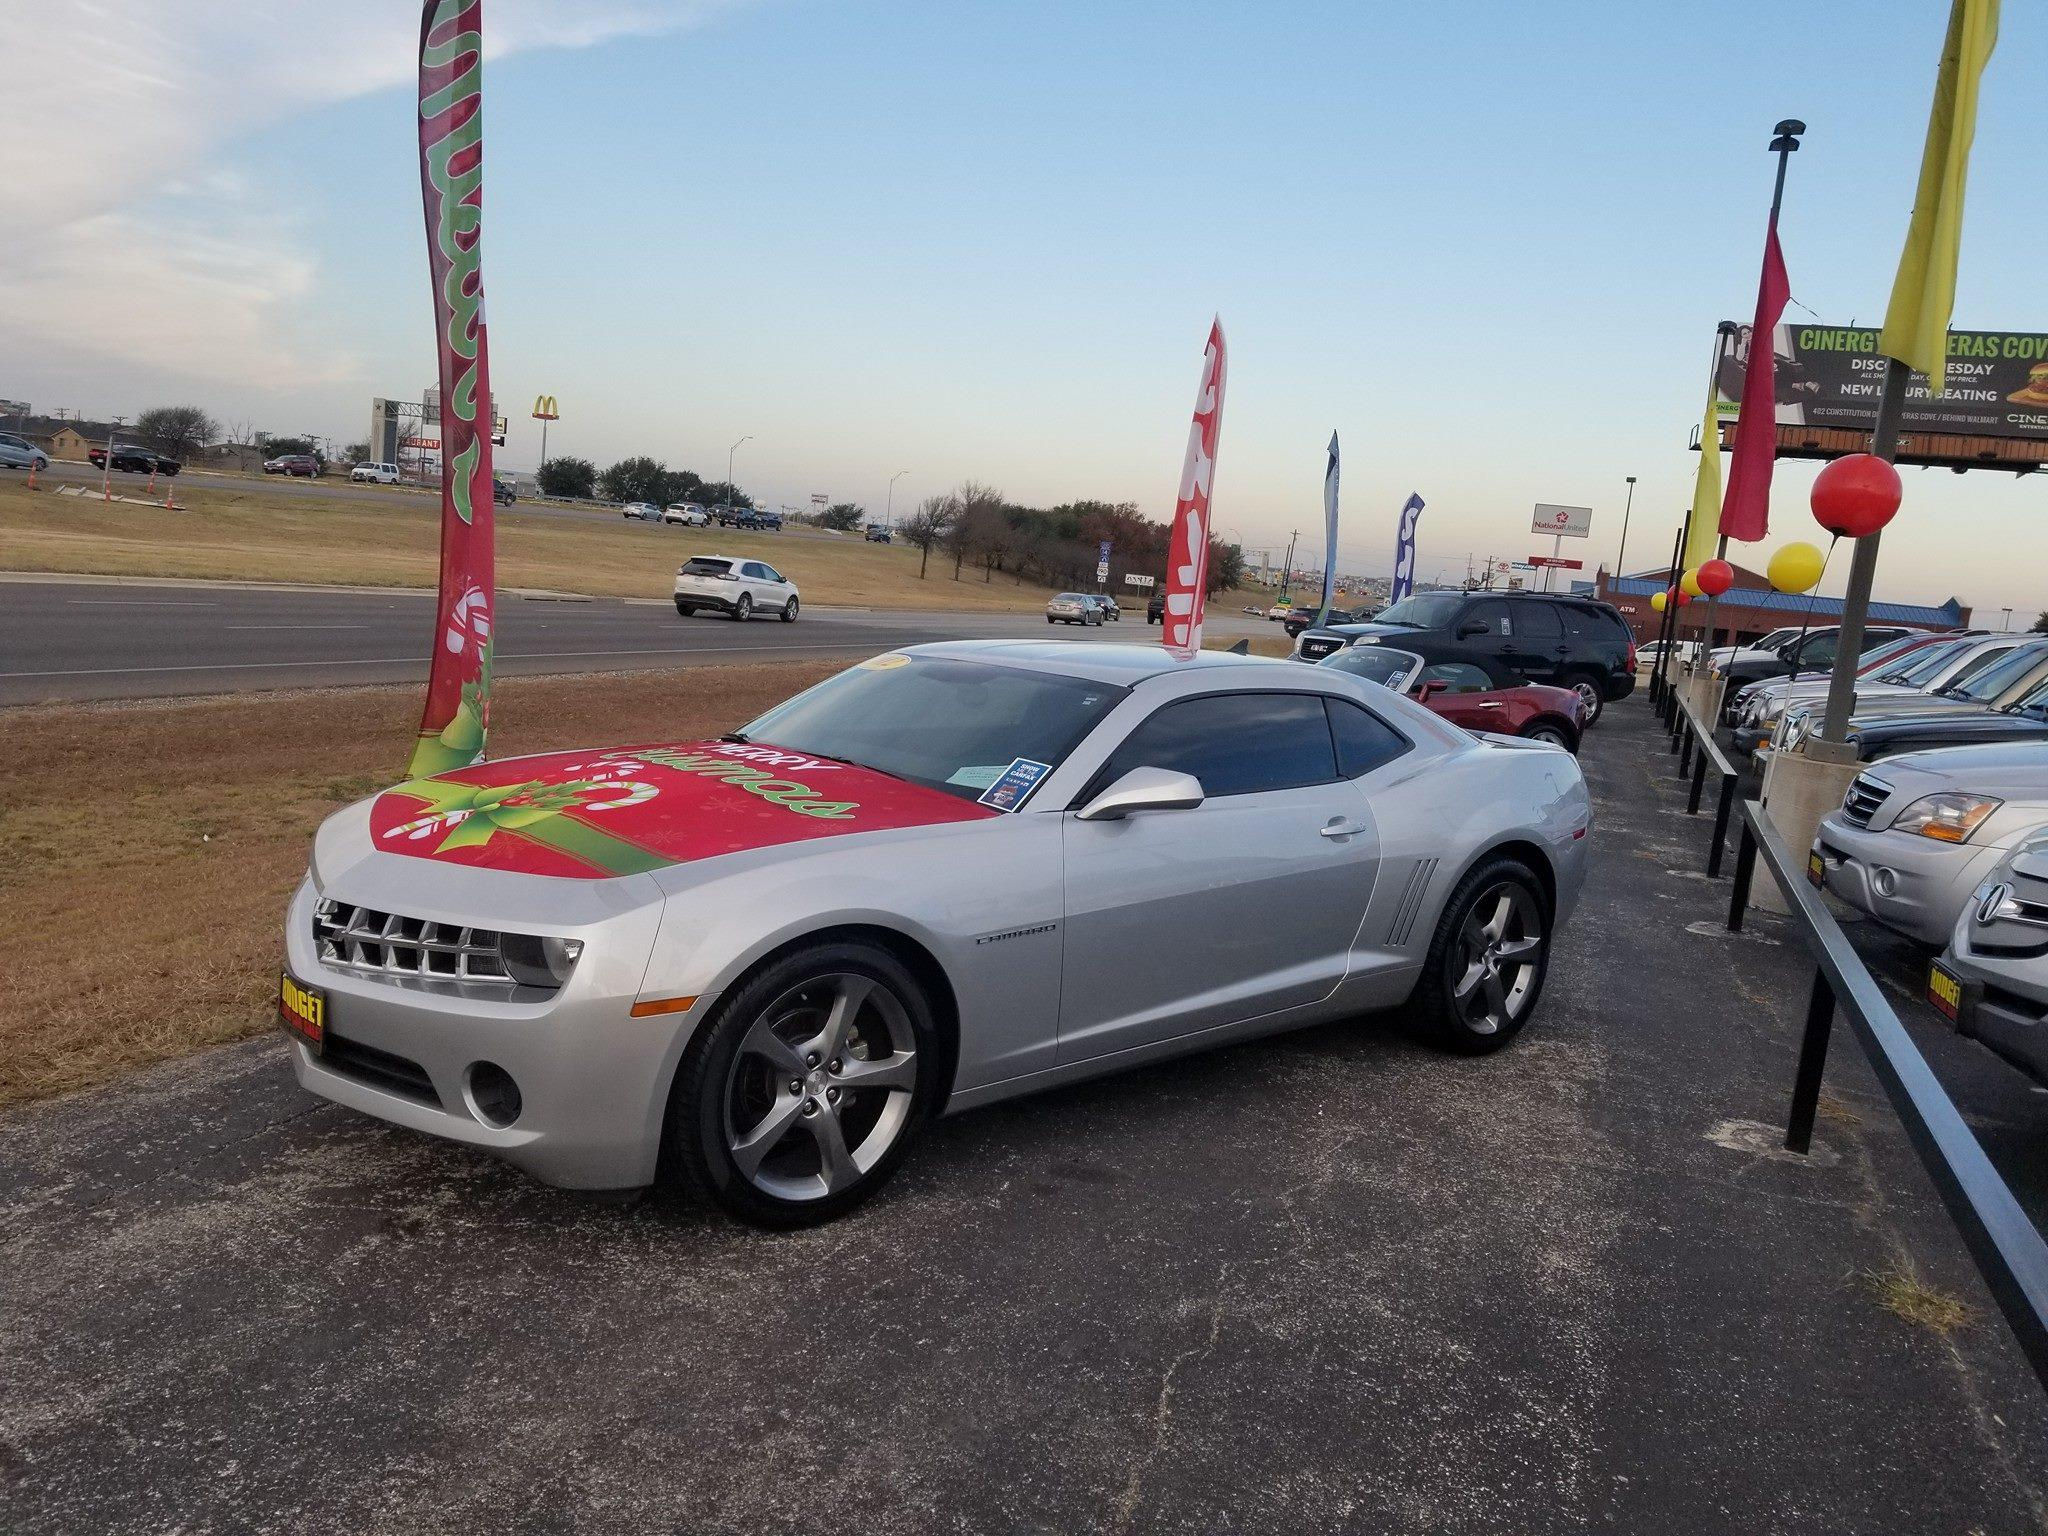 Budget Used Cars Killeen Tx